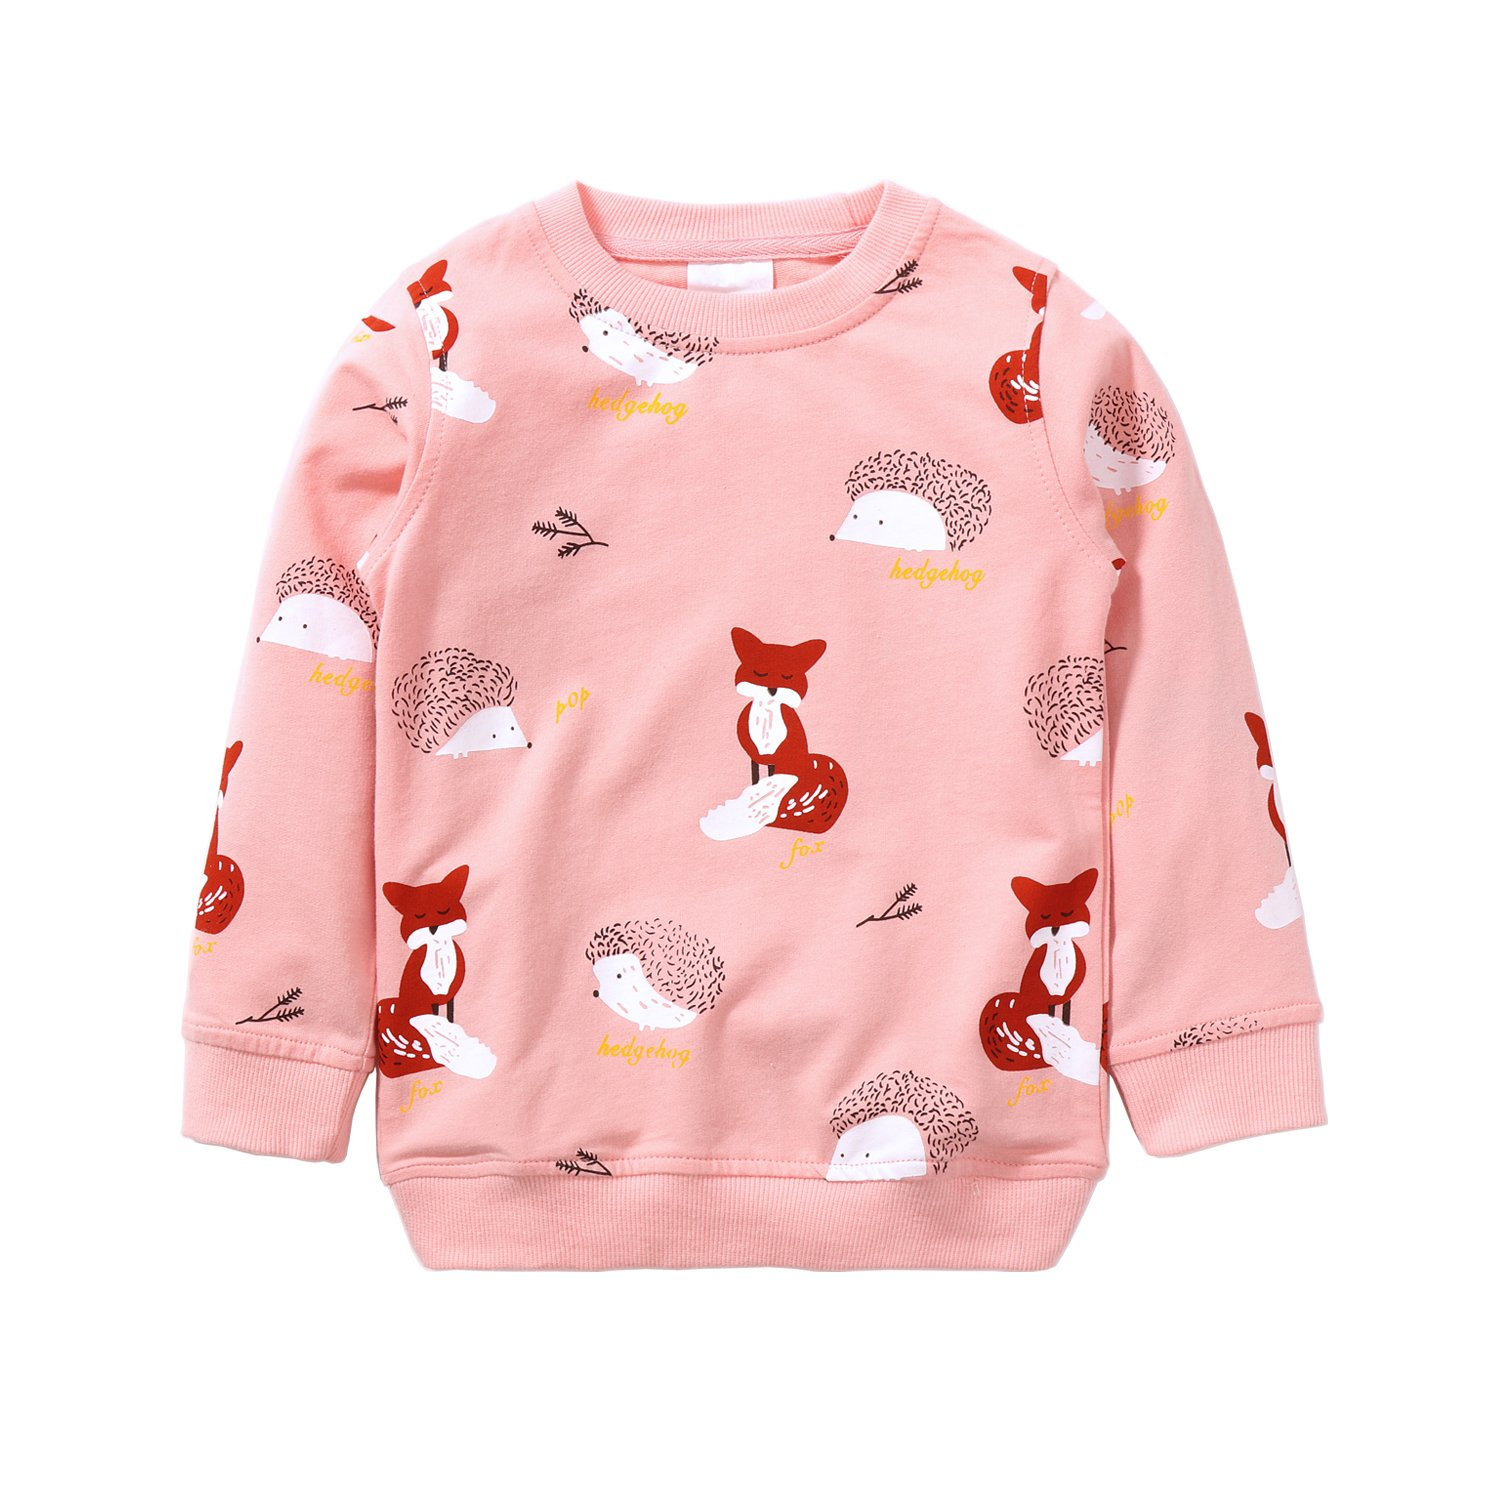 Hongshilian Unisex Kids Cute Cartoon Cotton Sweater Shirt(3T,Fox & Pink)